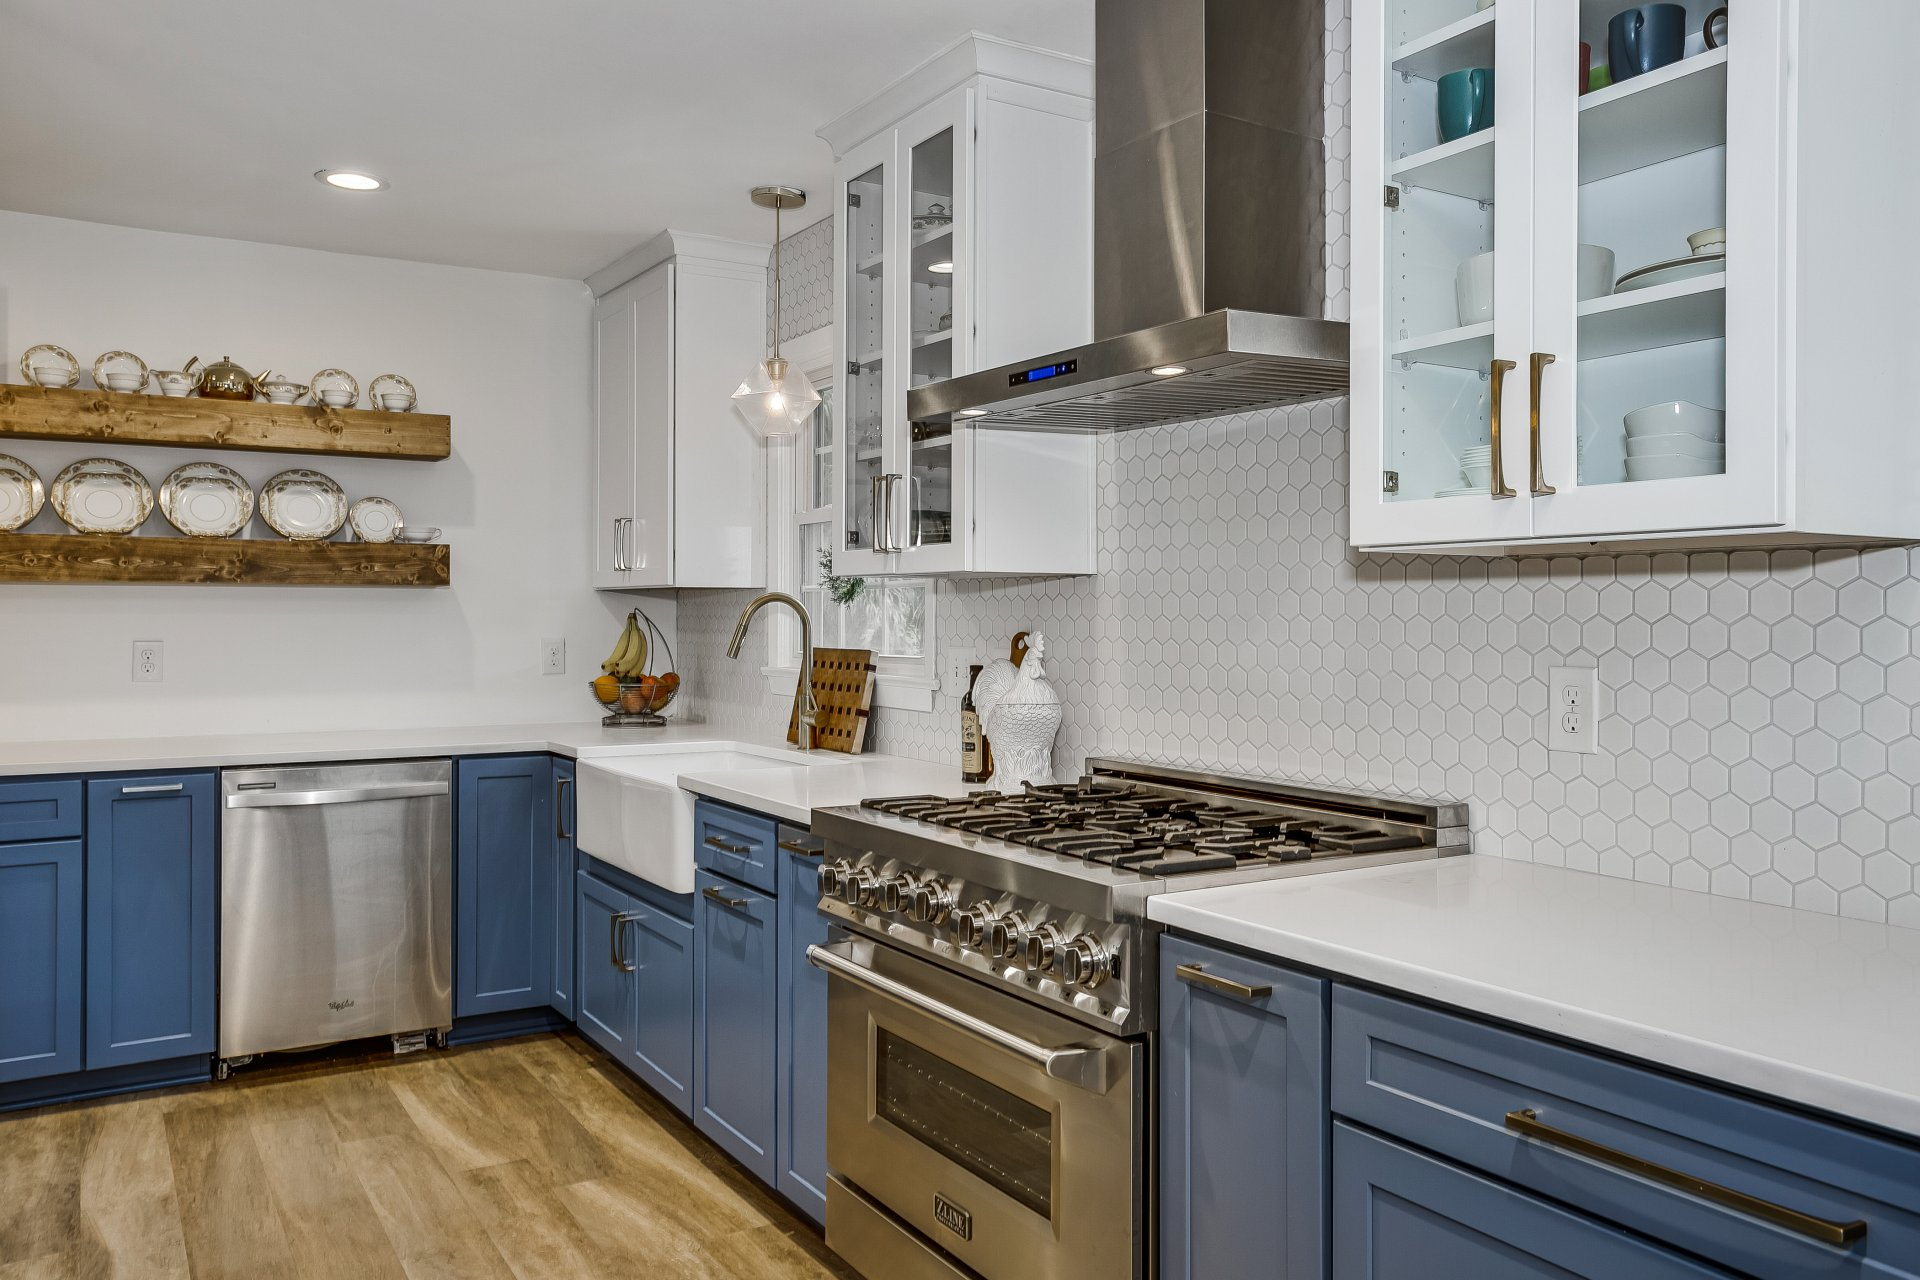 Custom cabinets in remodeled kitchen by Cabinet Depot